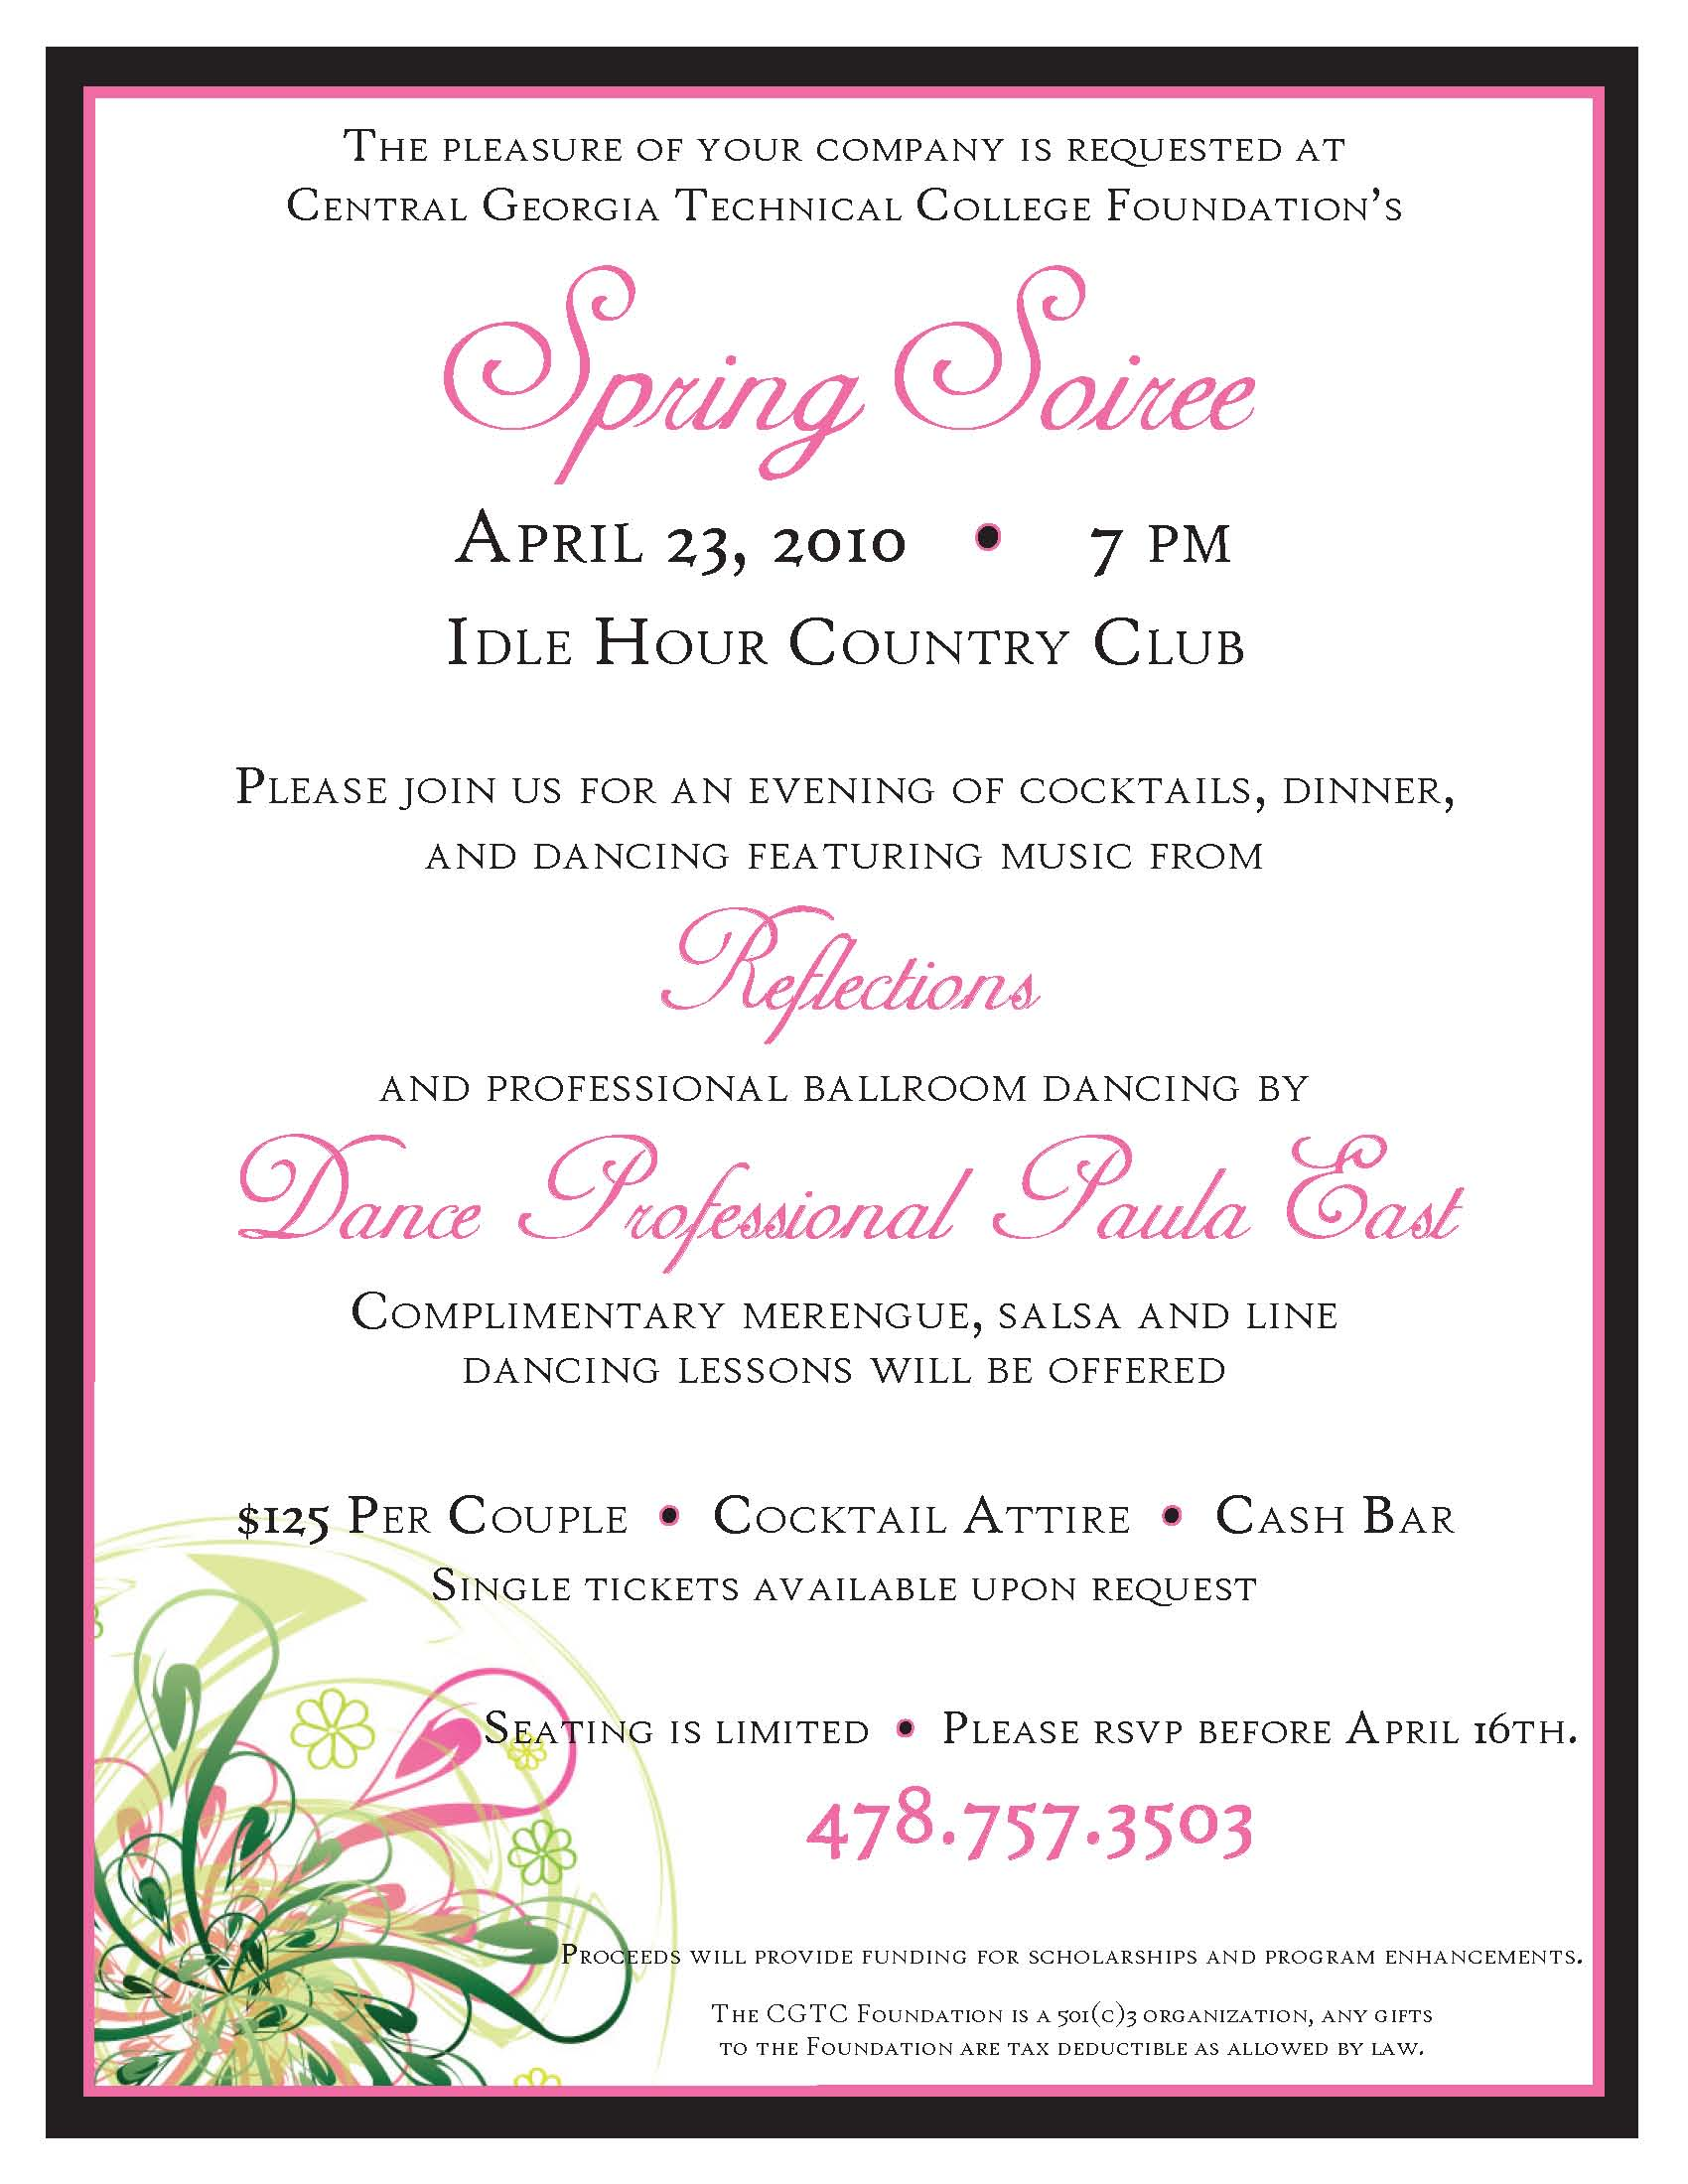 Spring Soiree Flyer